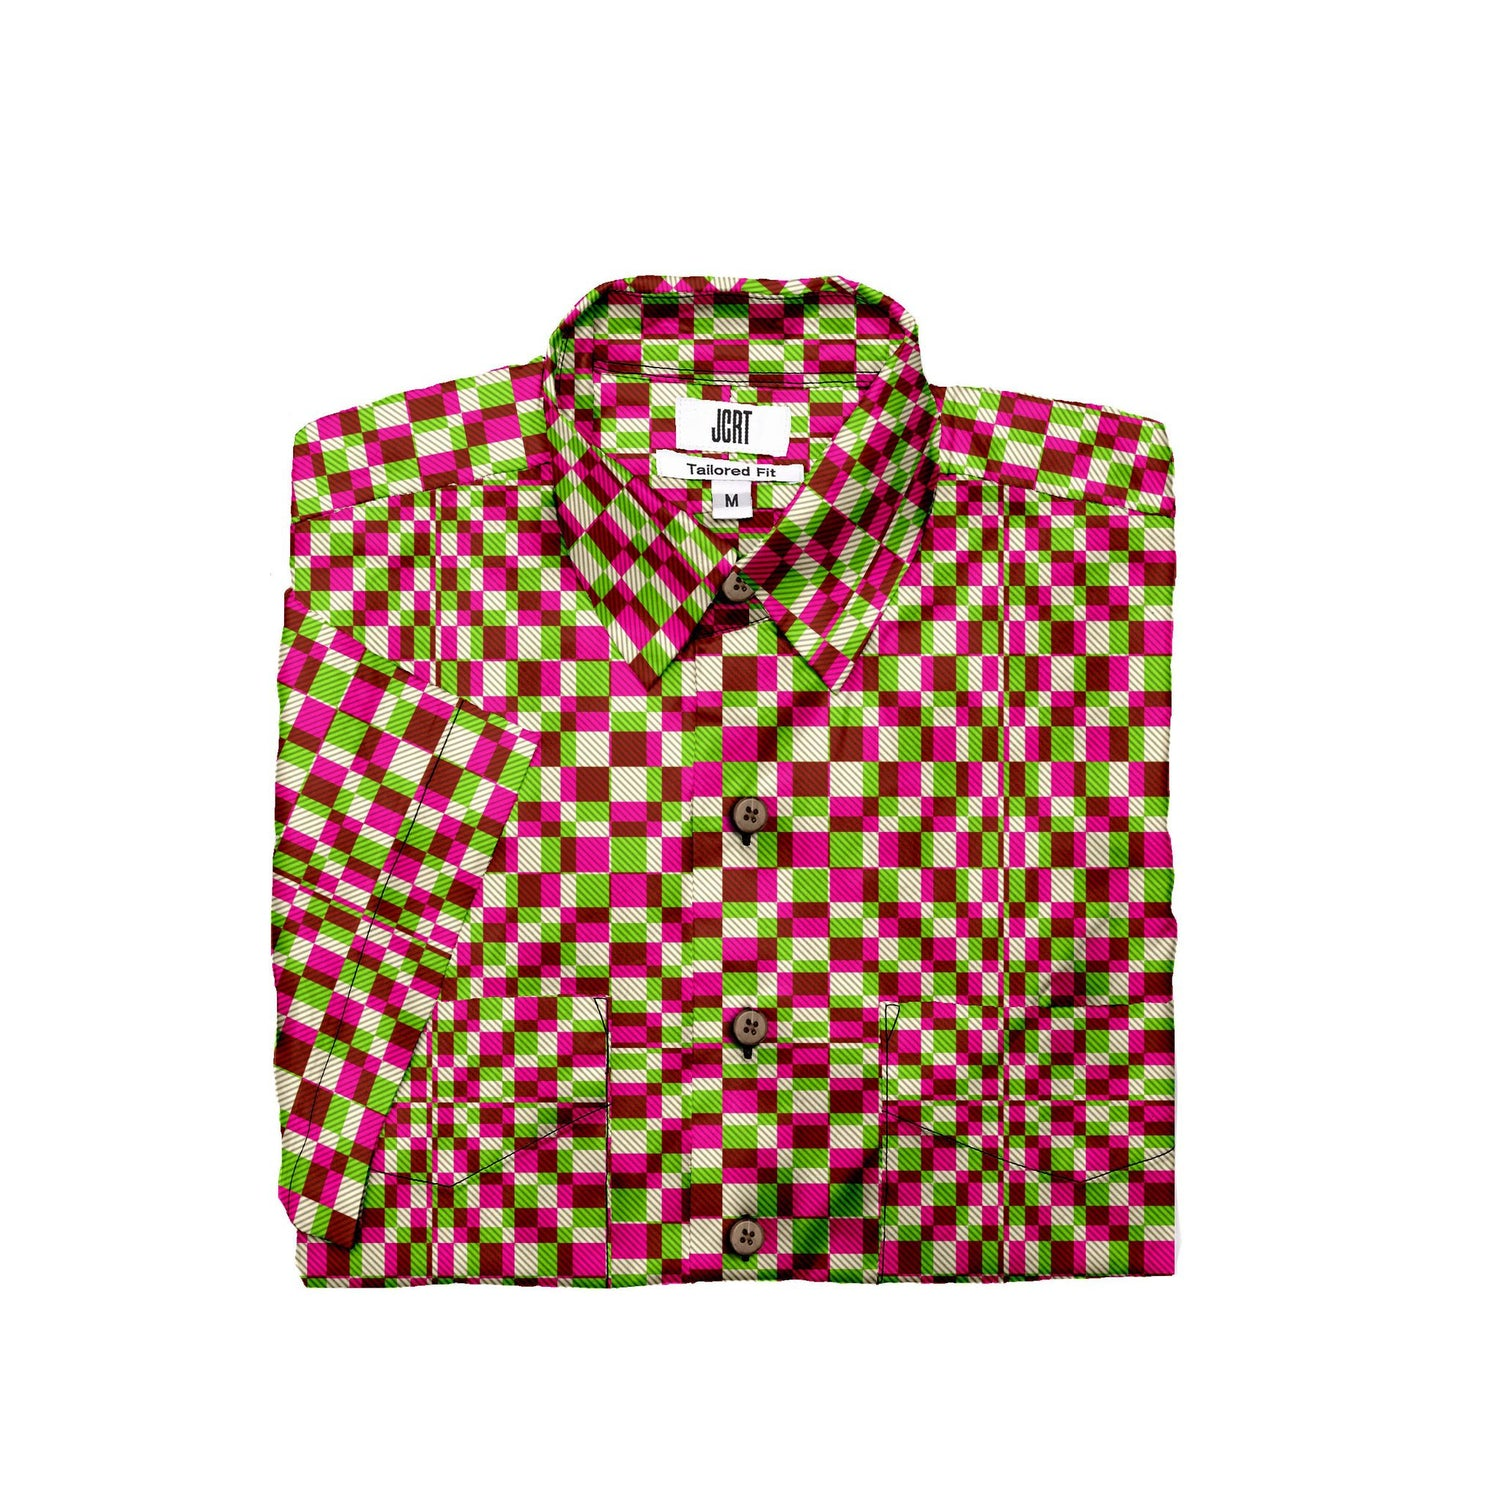 The Screaming Squares Plaid Short Sleeve Shirt